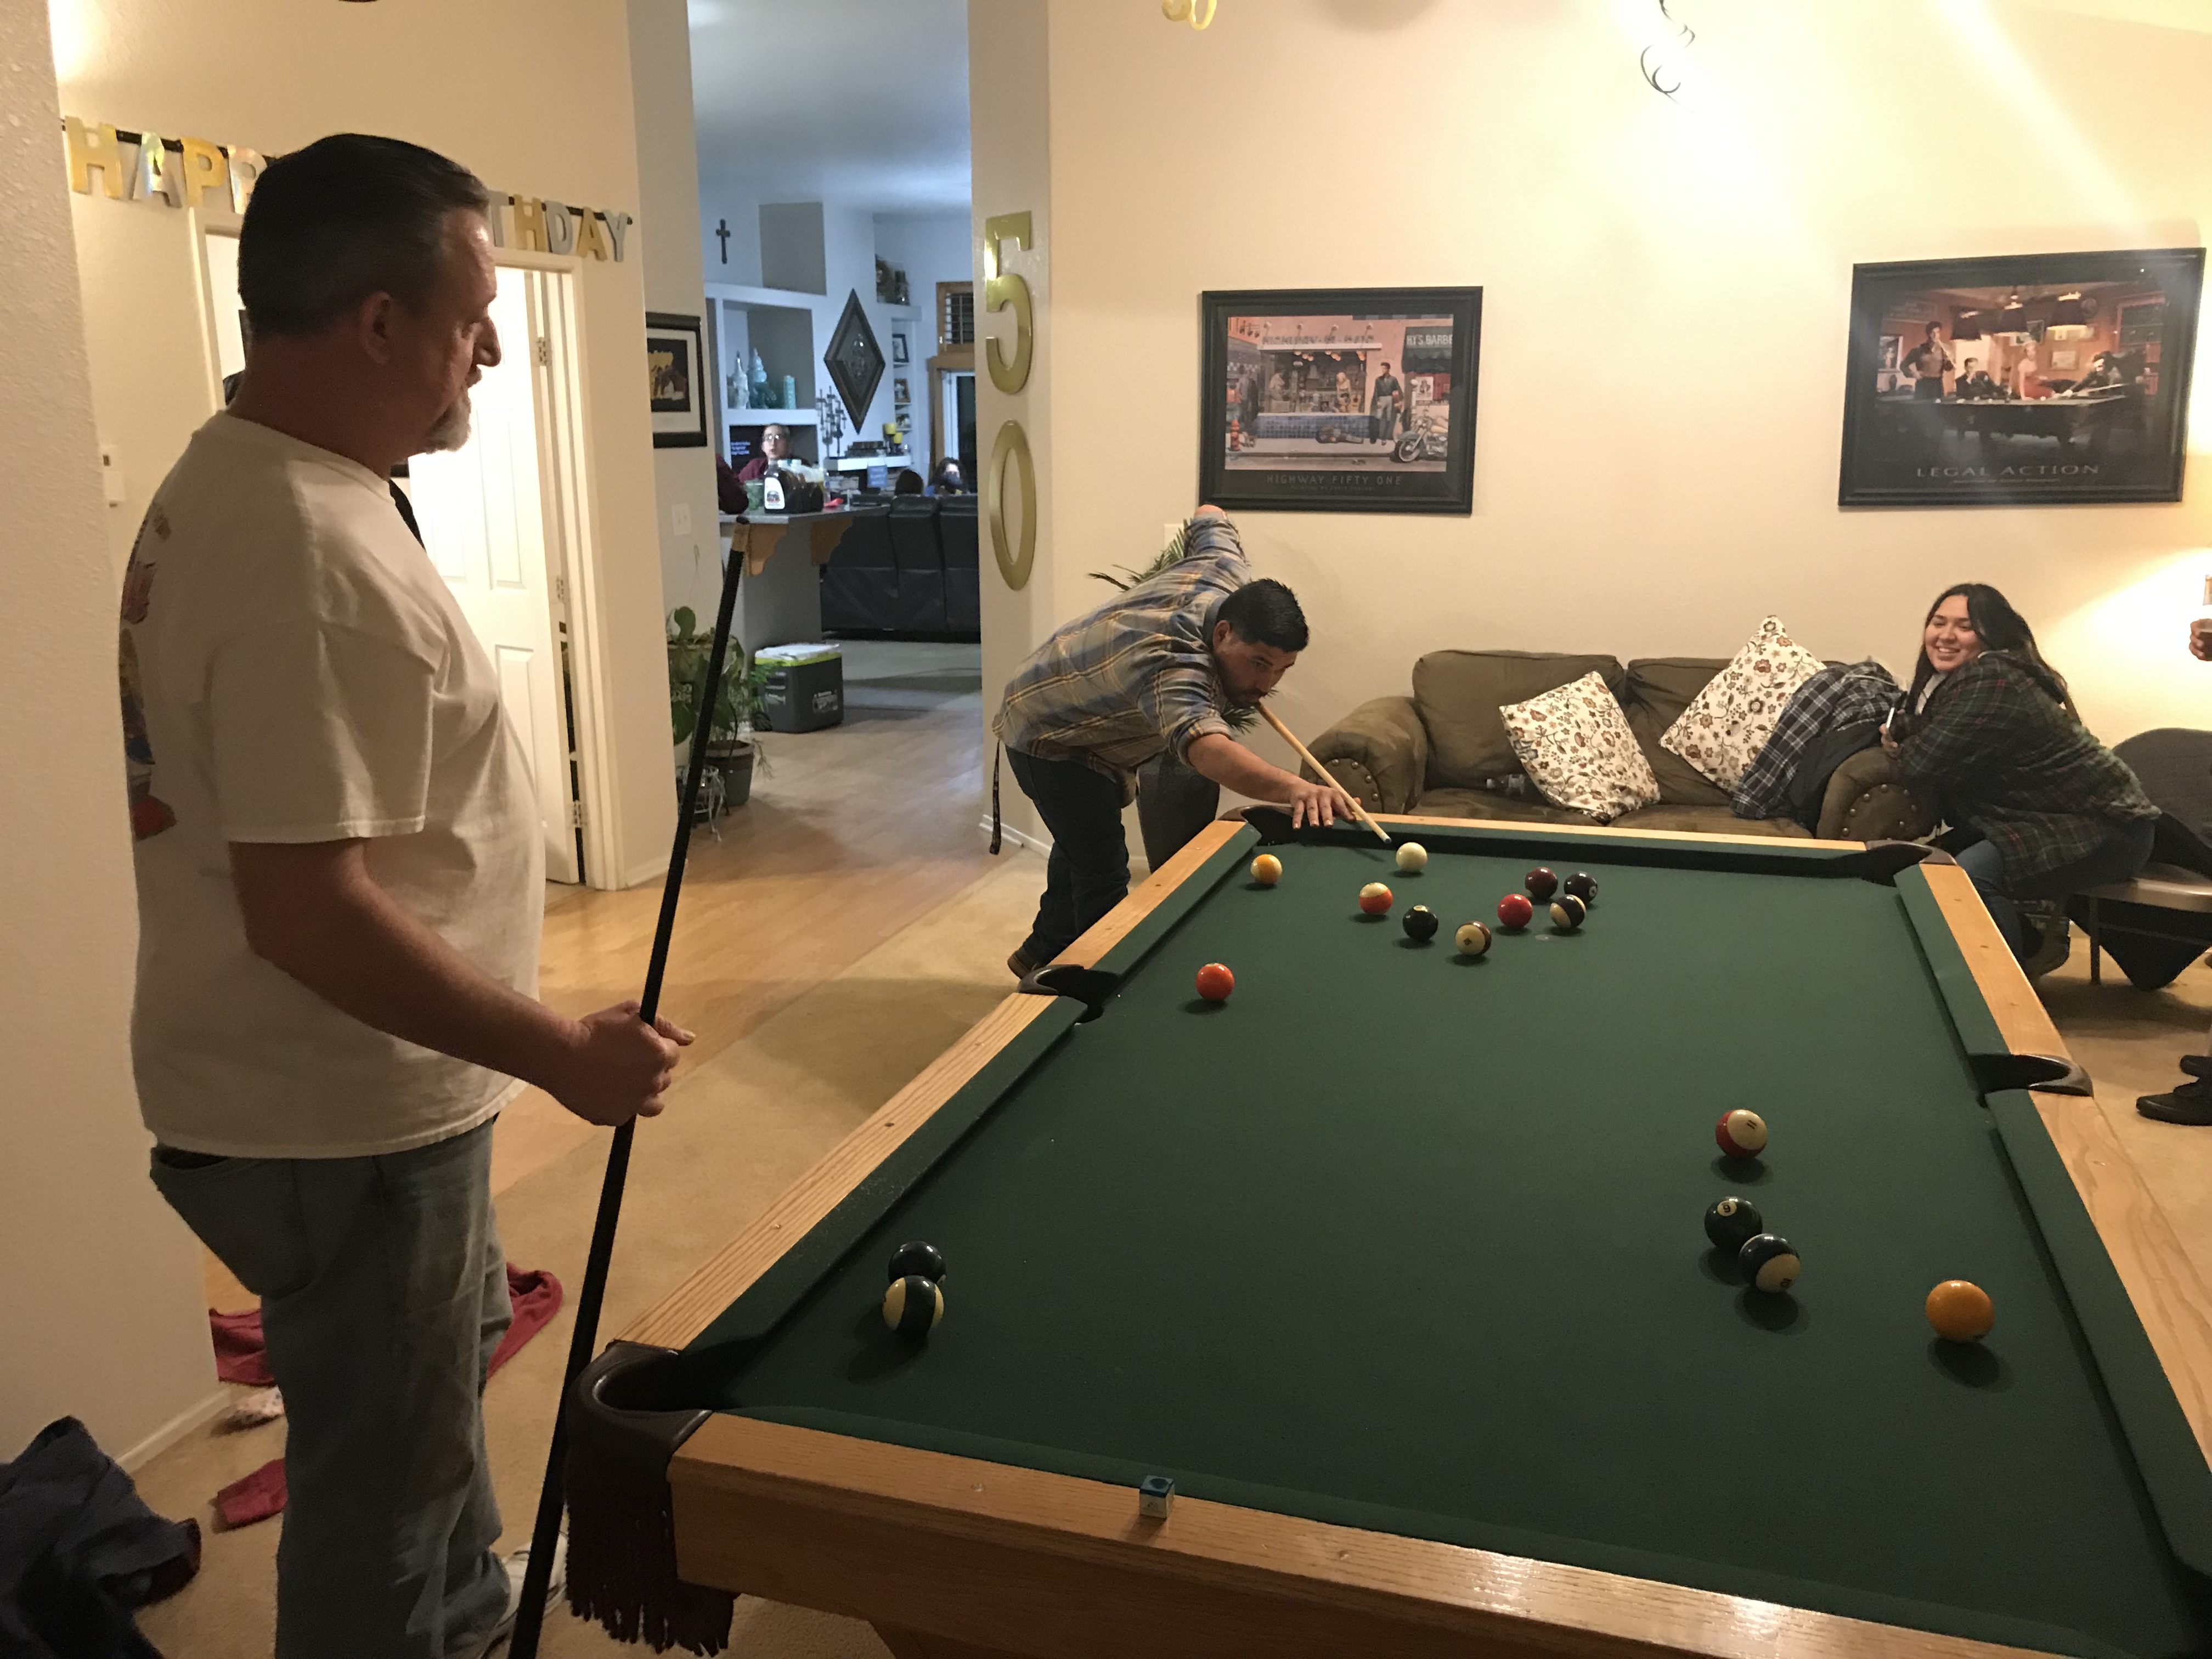 Leo and Brent playing pool